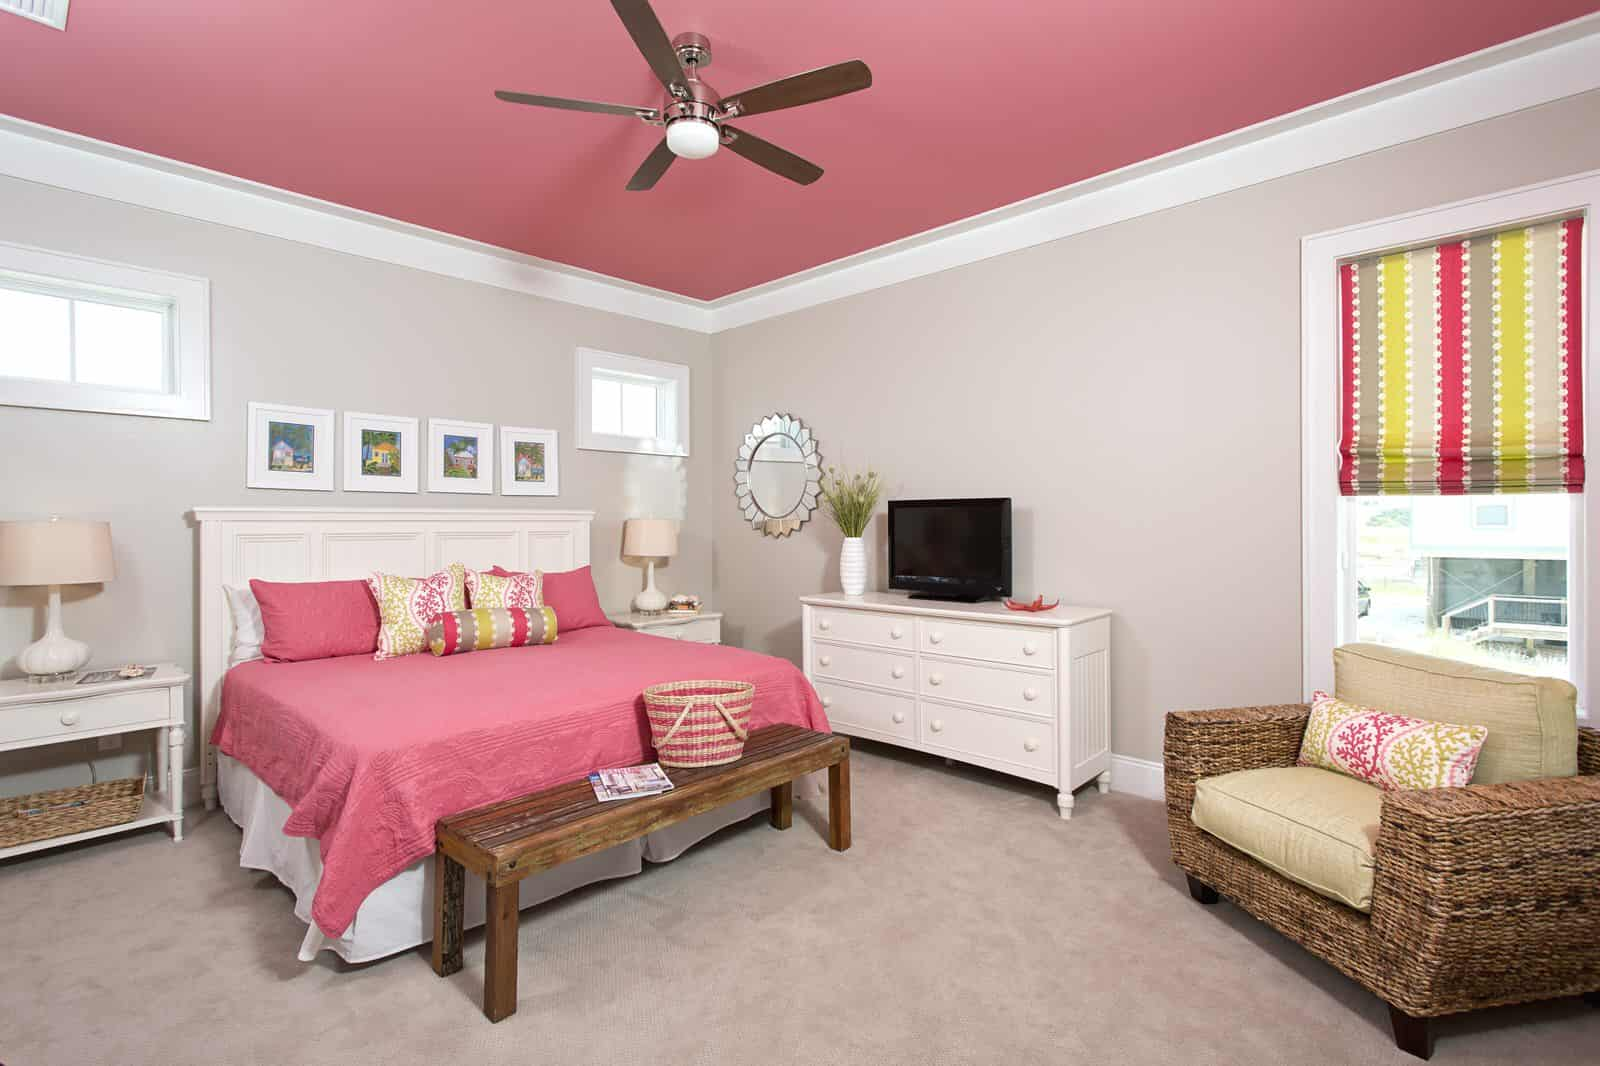 pink and grey bedroom with rogue ceiling